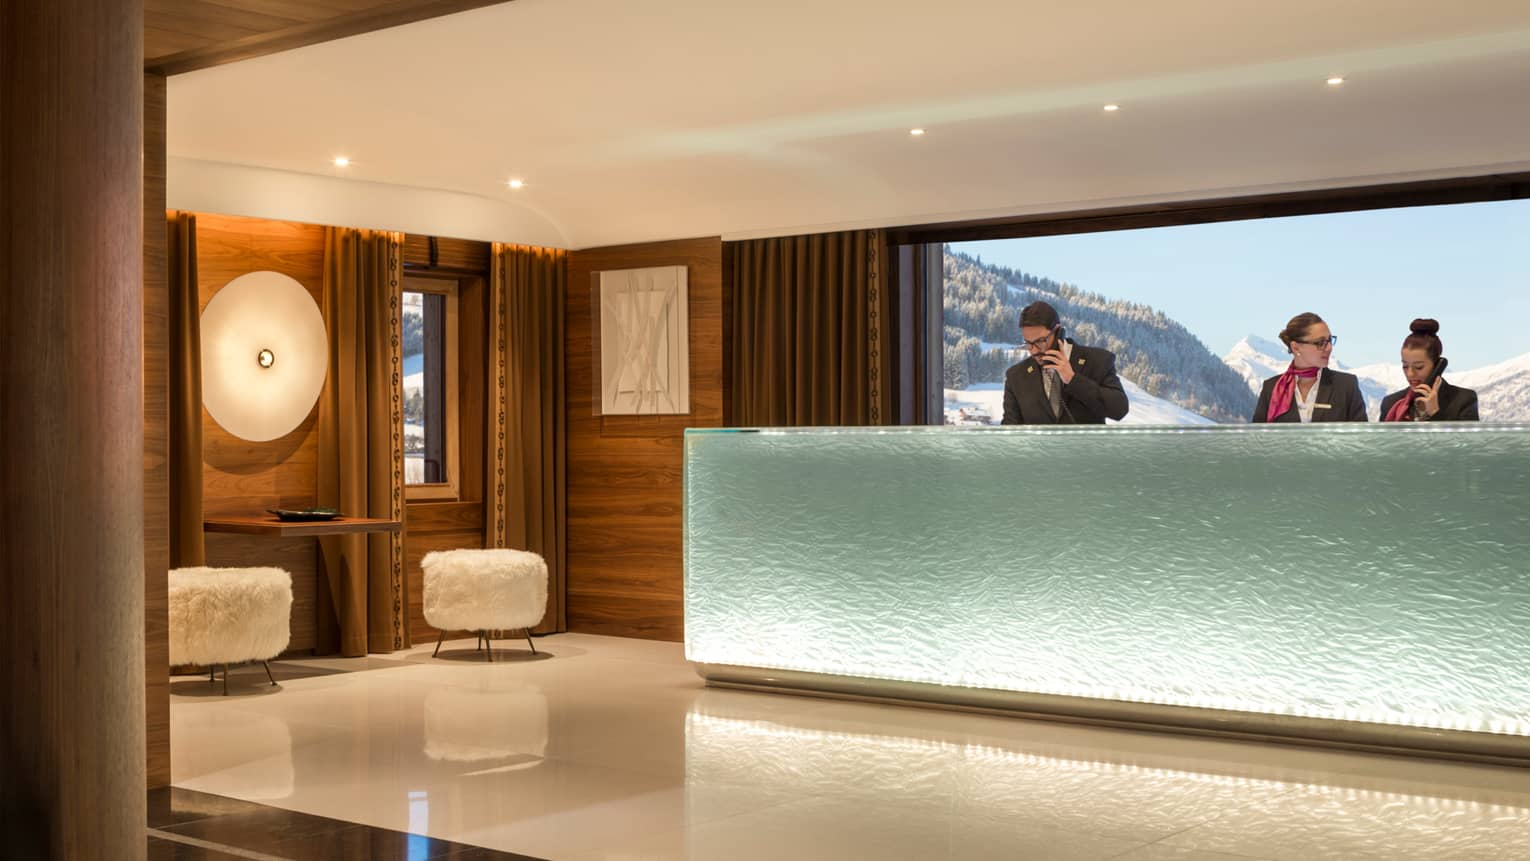 Hotel staff answer phones at frosted glass reception desk in modern lobby